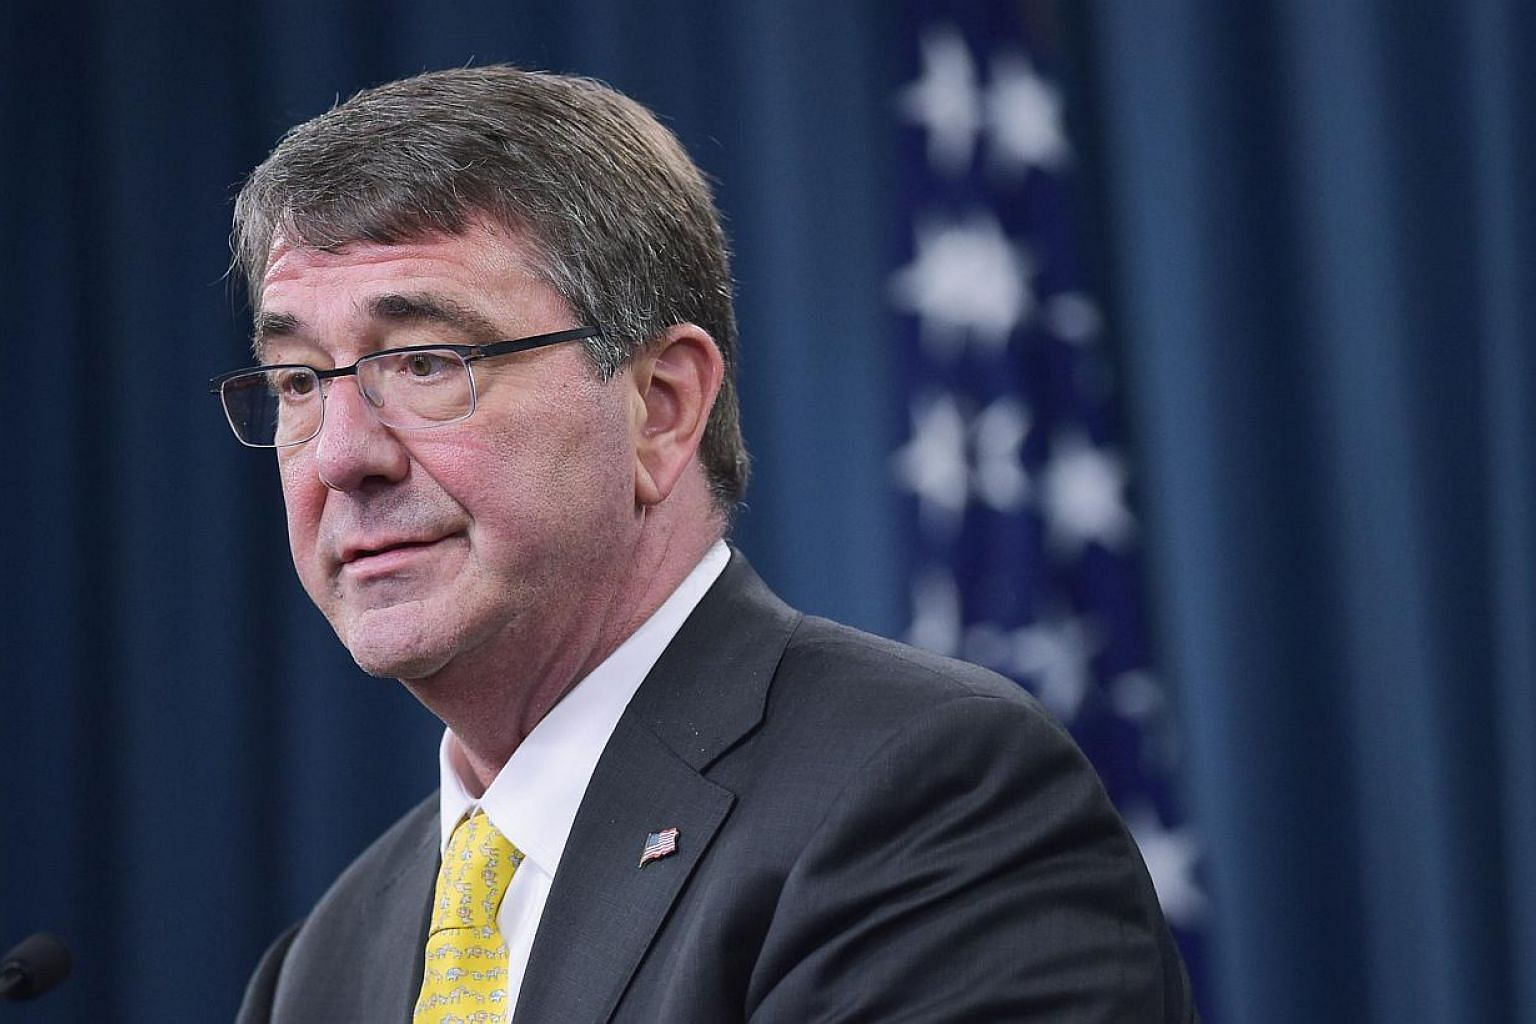 US Defense Secretary Ash Carter pledged $18 million (S$24.2 million) on Sunday to help Vietnam buy US patrol boats, shortly after touring a Vietnamese coast guard vessel that was hit by a Chinese ship during a skirmish in the South China Sea. -- PHOT